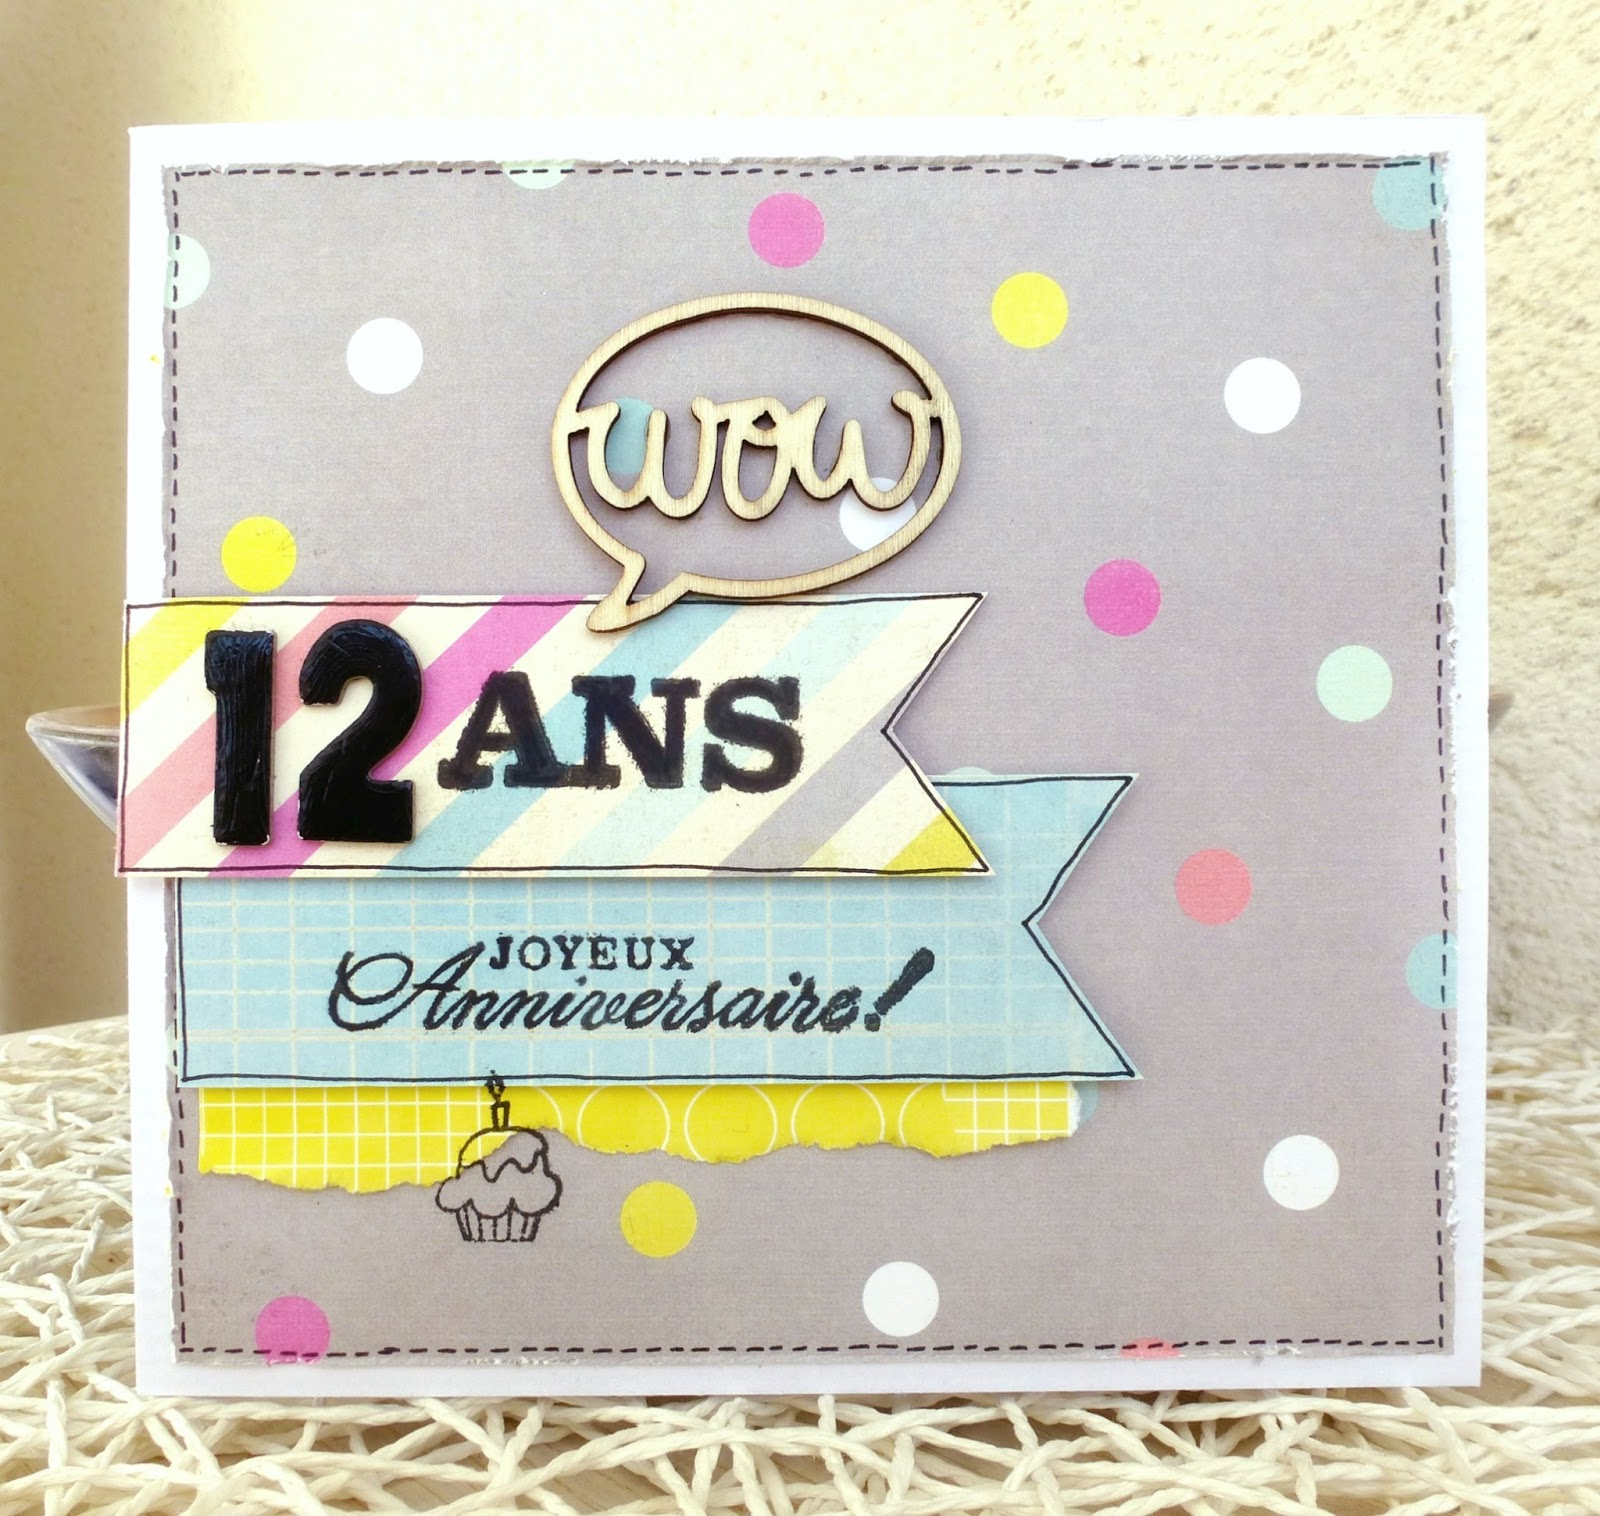 Scrap Plaisir Le Scrap De Shannon91 Invitee Creative Pour L